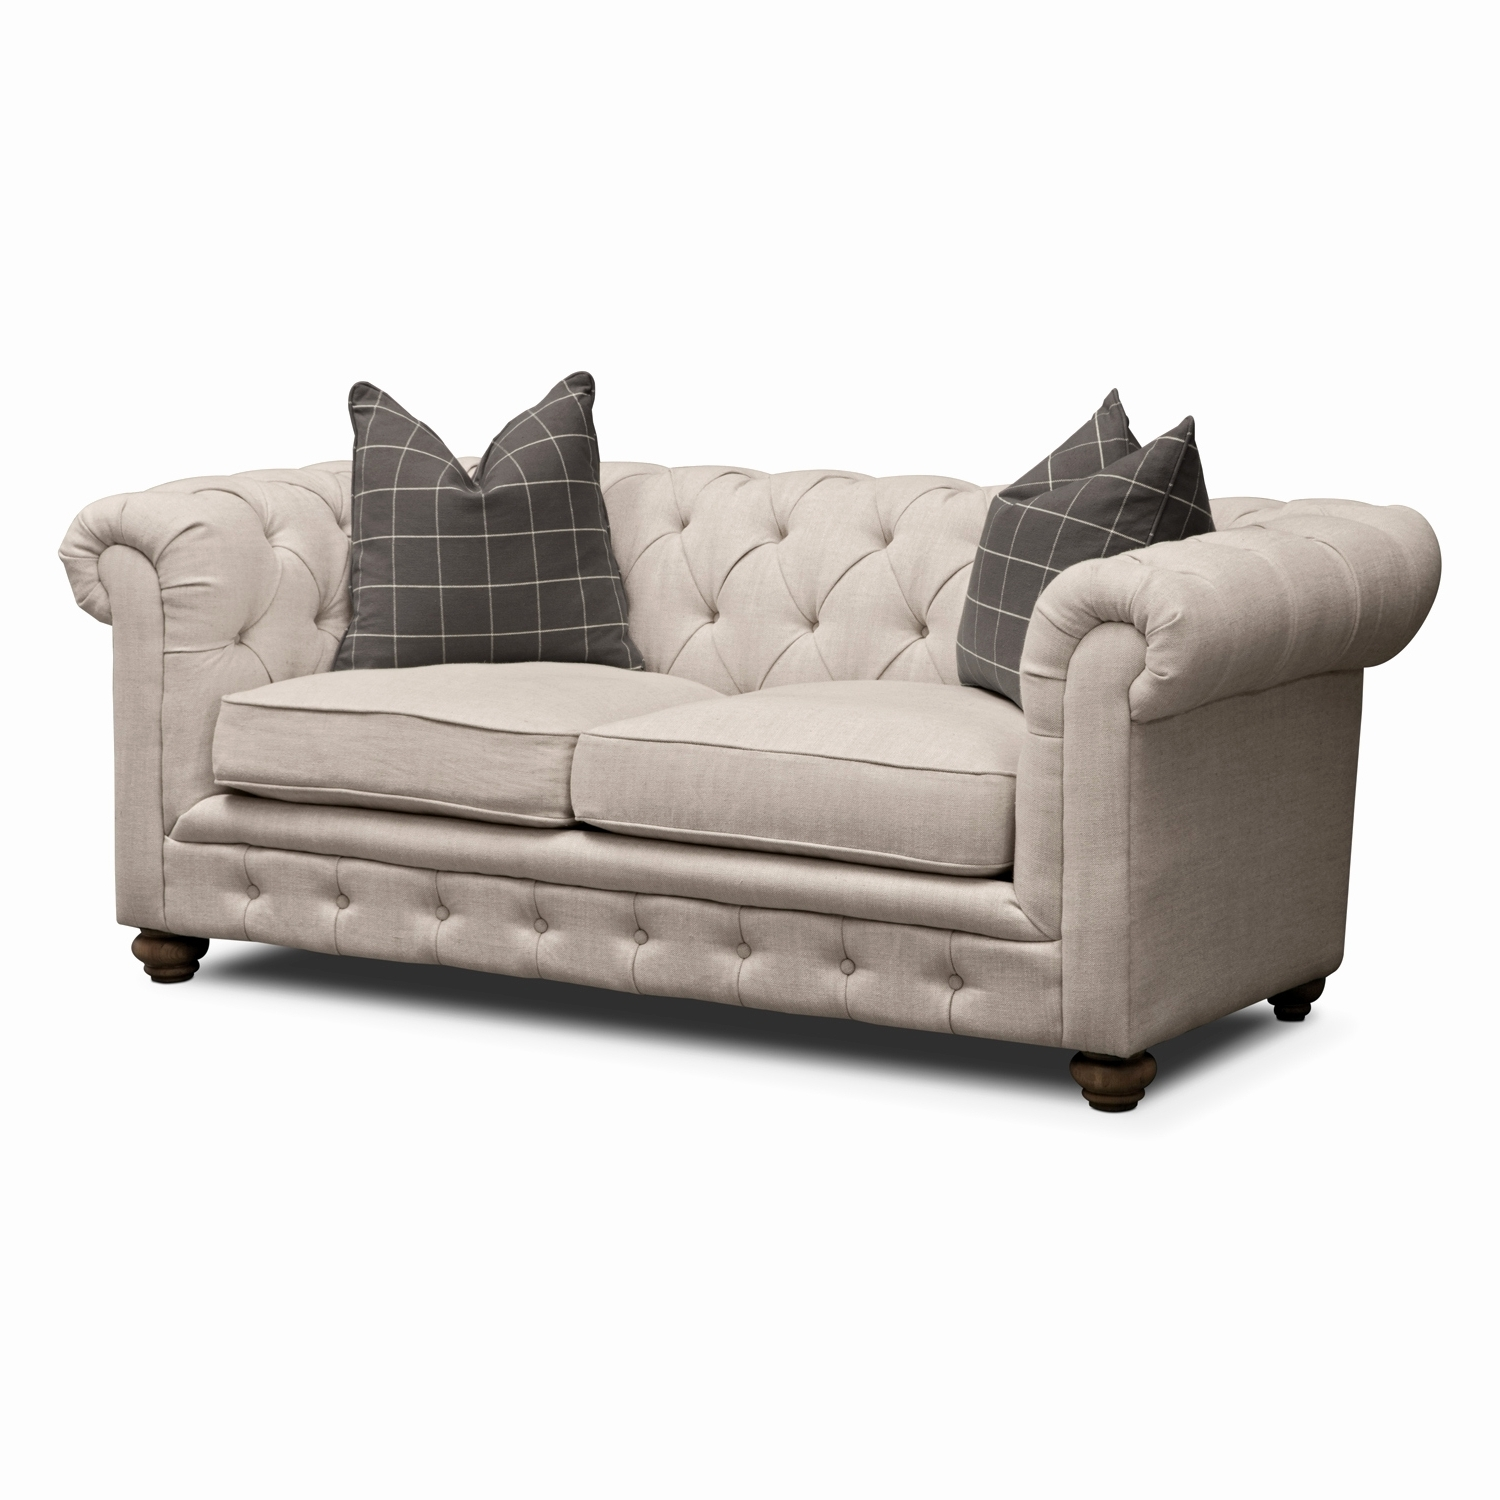 Bryden Sofa Slate Value City Furniture And Mattresses For Sofas With Regard To Well Known Value City Sofas (View 4 of 20)